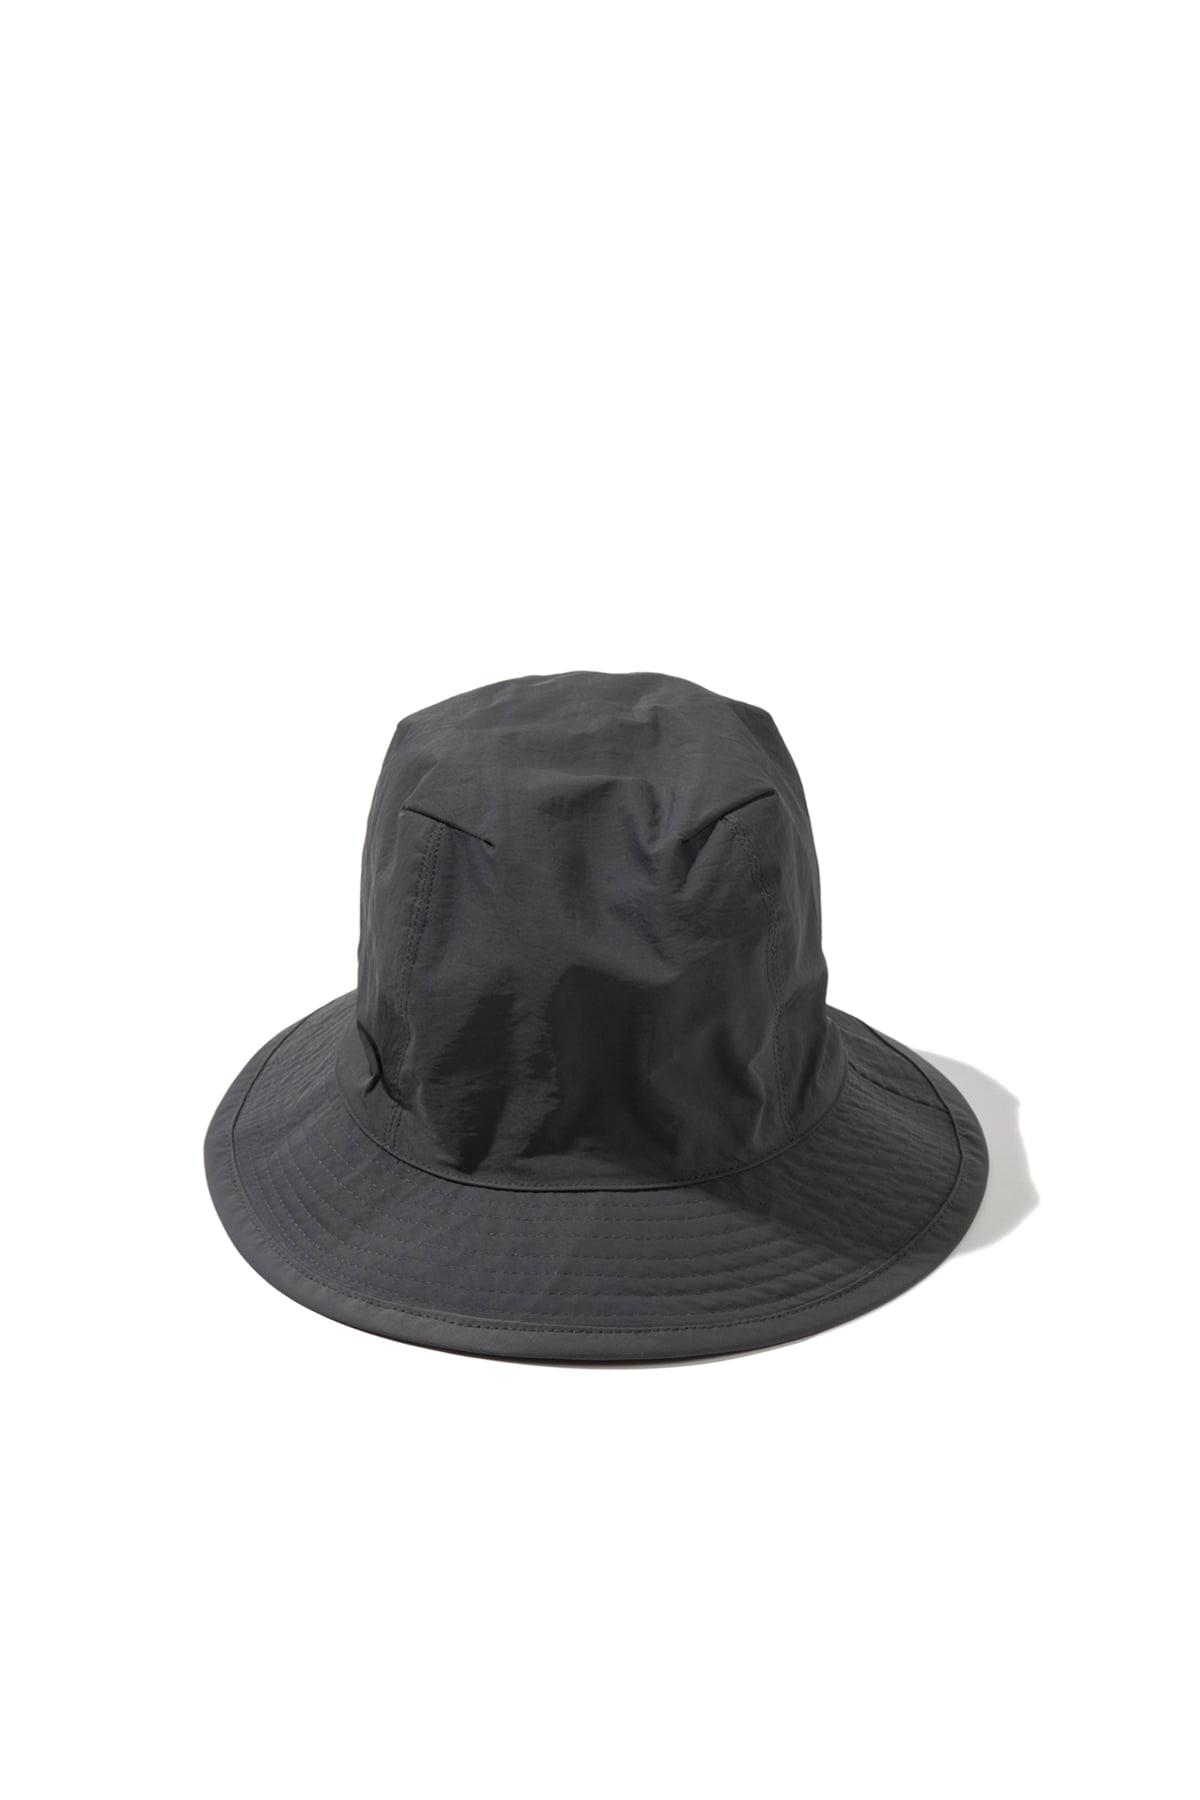 Blankof : HLG 01 H1 Bucket Hat (Olive Grey)